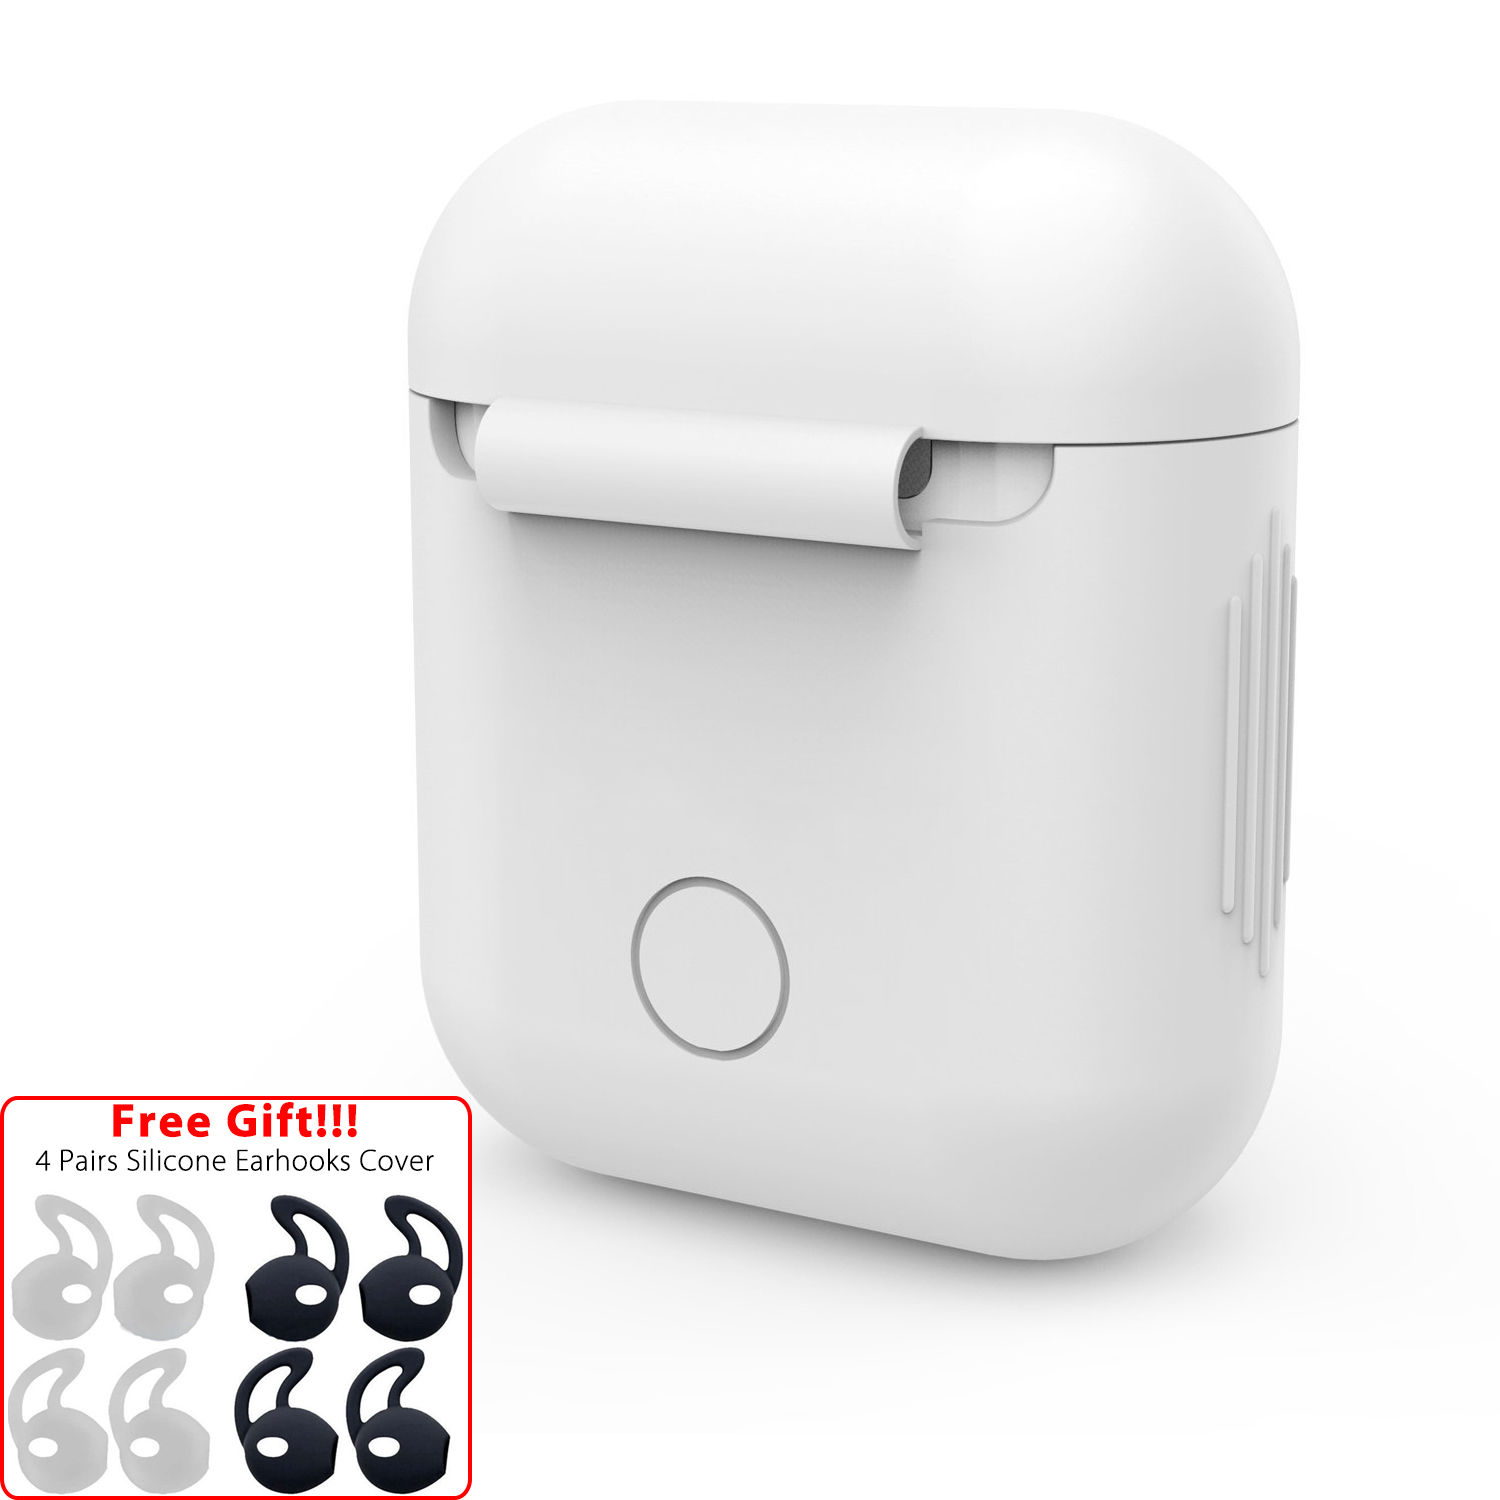 41c8cbe9b57 For Apple AirPods Accessories Silicone Cover Case+ 4 Pairs Earbud ...